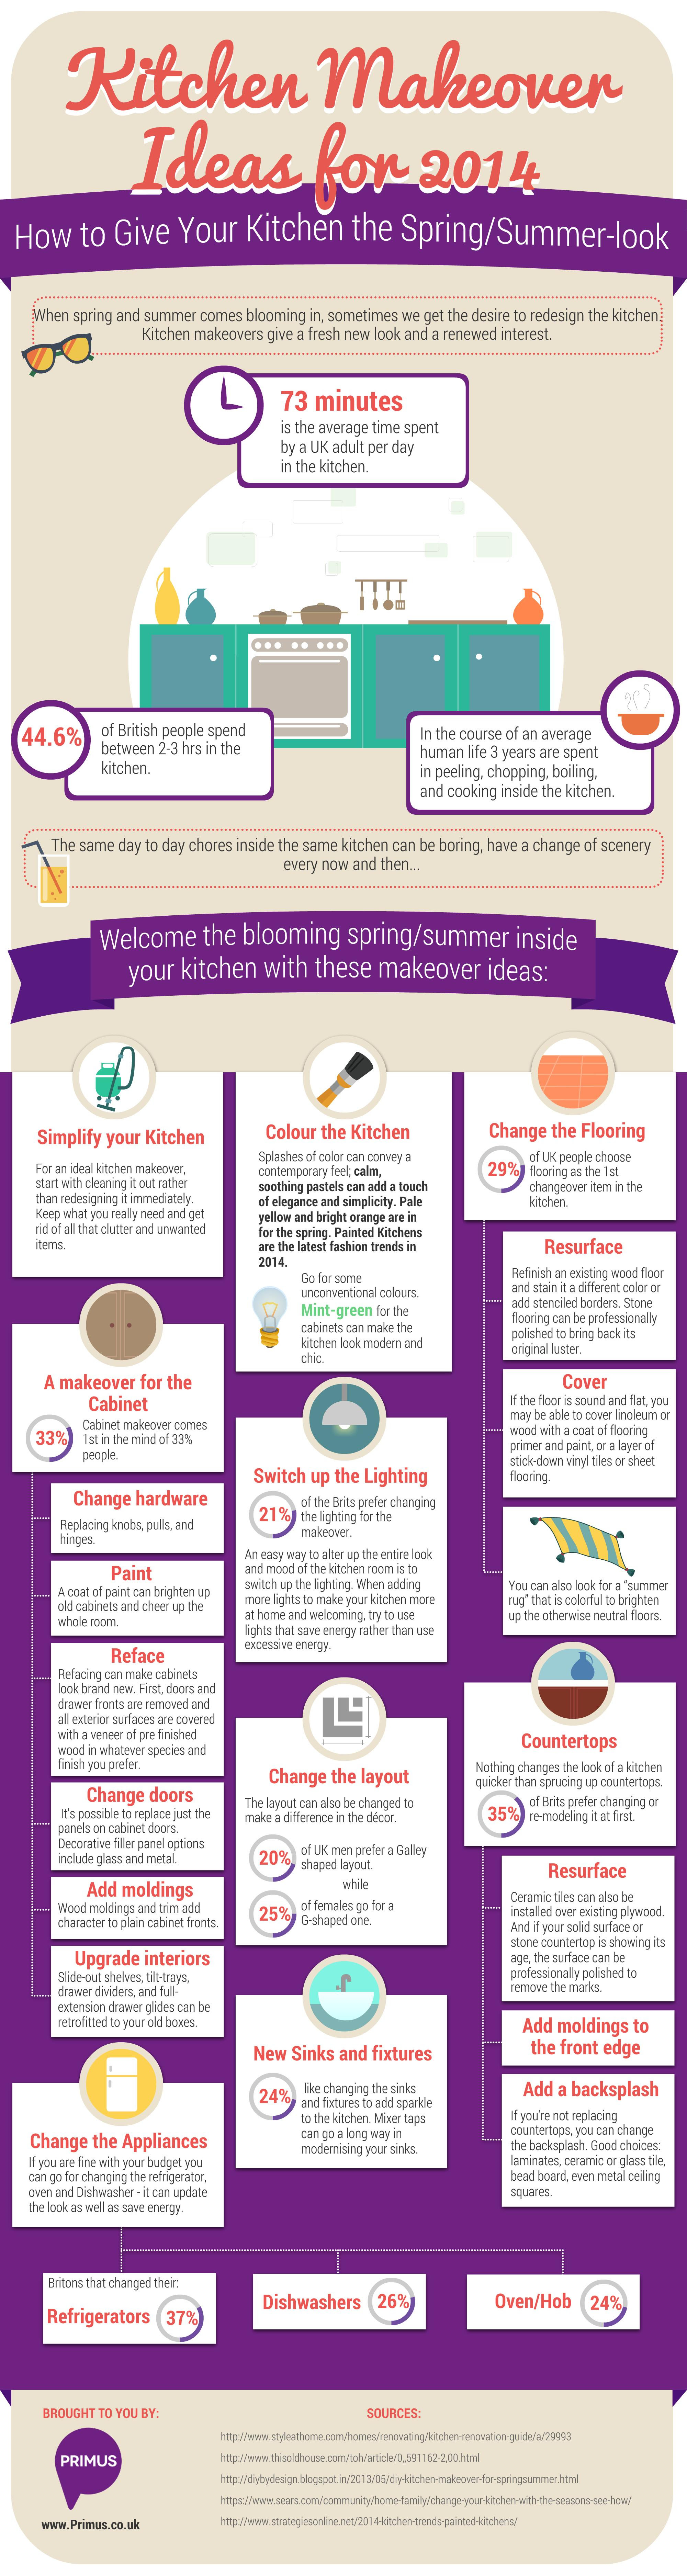 Infographic: Kitchen Makeover Ideas for 2014 {infographic]